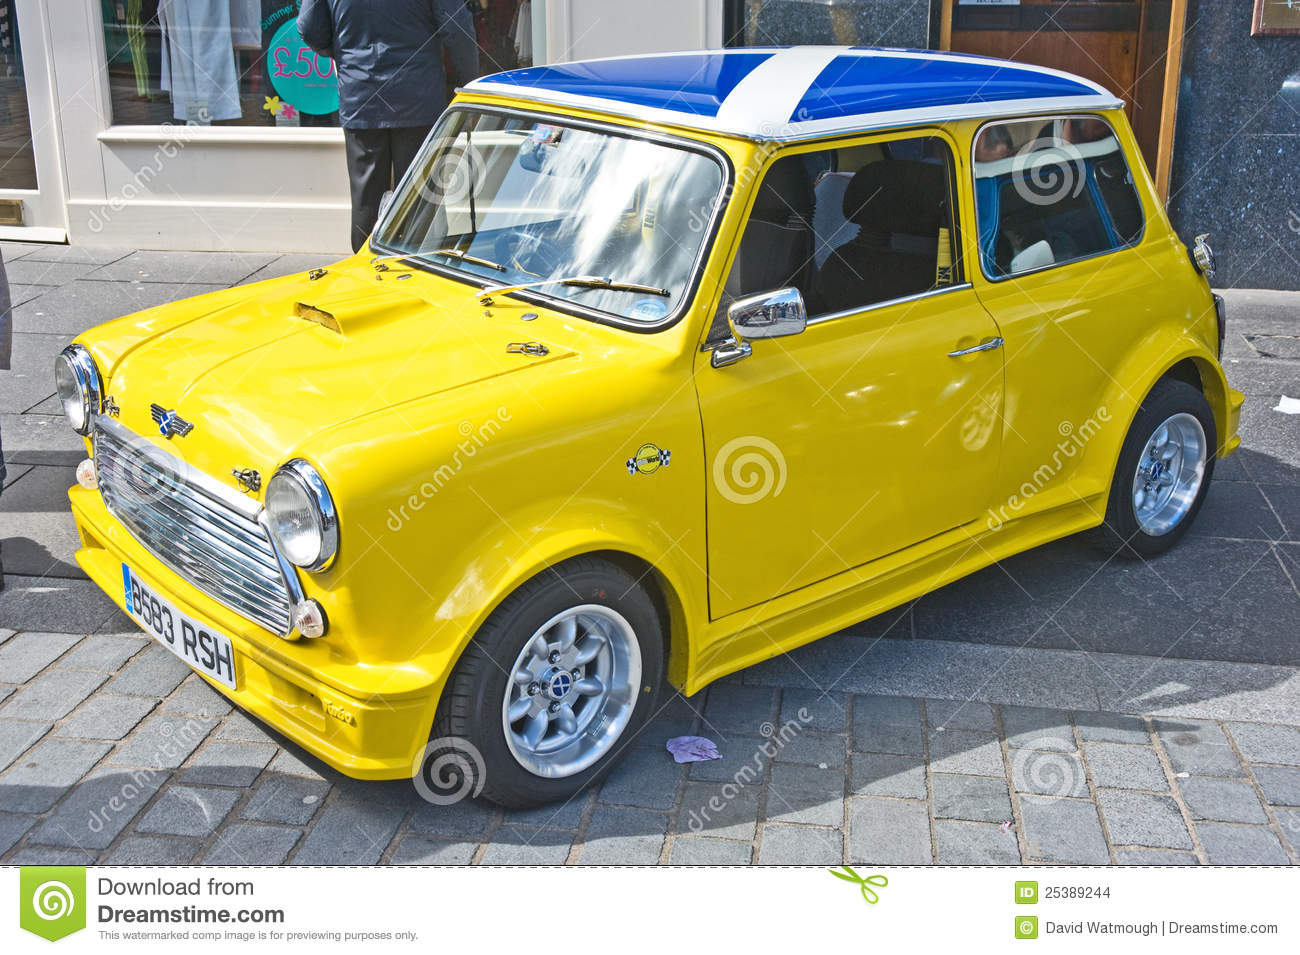 A3 Cabriolet together with Stock Images Yellow Mini Cooper Scottish Flag Roof Image25389244 furthermore 7258 additionally 598551 as well 2012 Holden Colorado First Drive. on car audio showroom